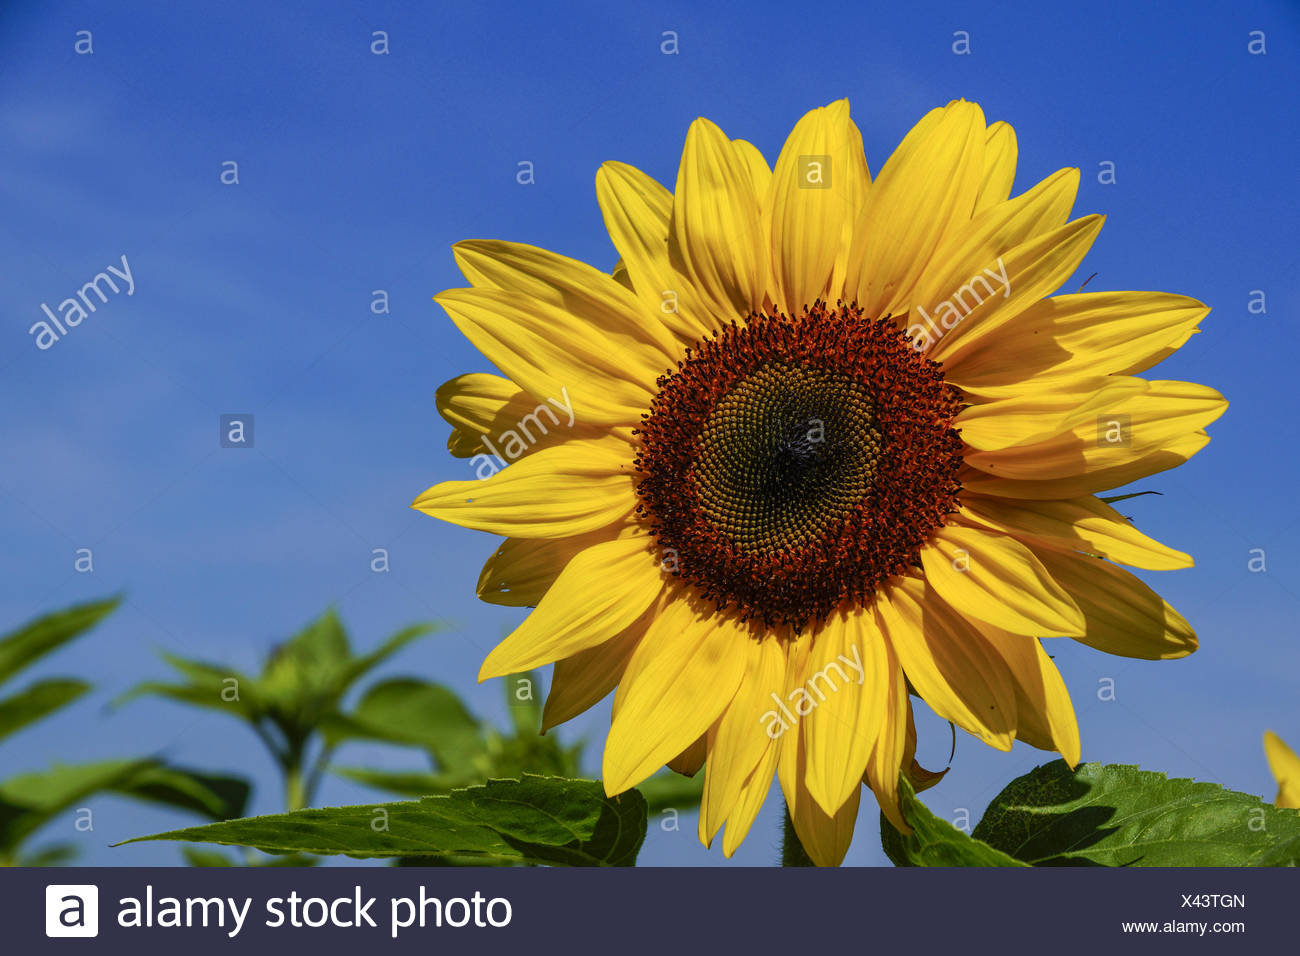 Sonnenblume, Helianthus annuus, Sonnenblumenfeld, Sunflower, sunflower field, Day, Sunny, Nobody, Bright, Agriculture, No People - Stock Image